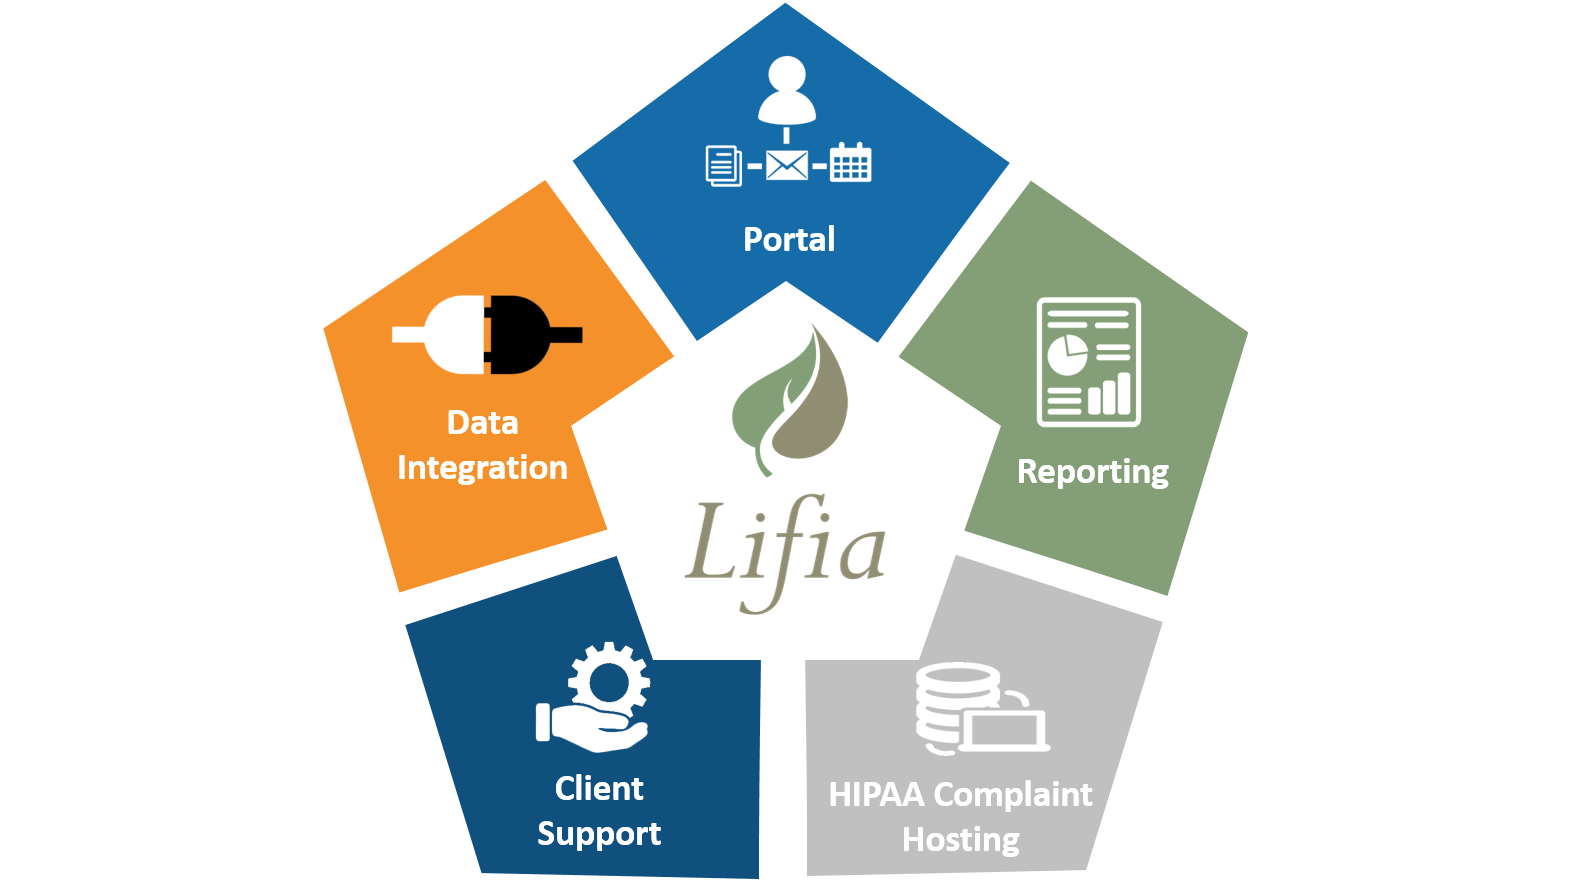 Lifia is a powerful electronic content management and eligibility determination tools that lets you monitor, report, integrate and support your clients.